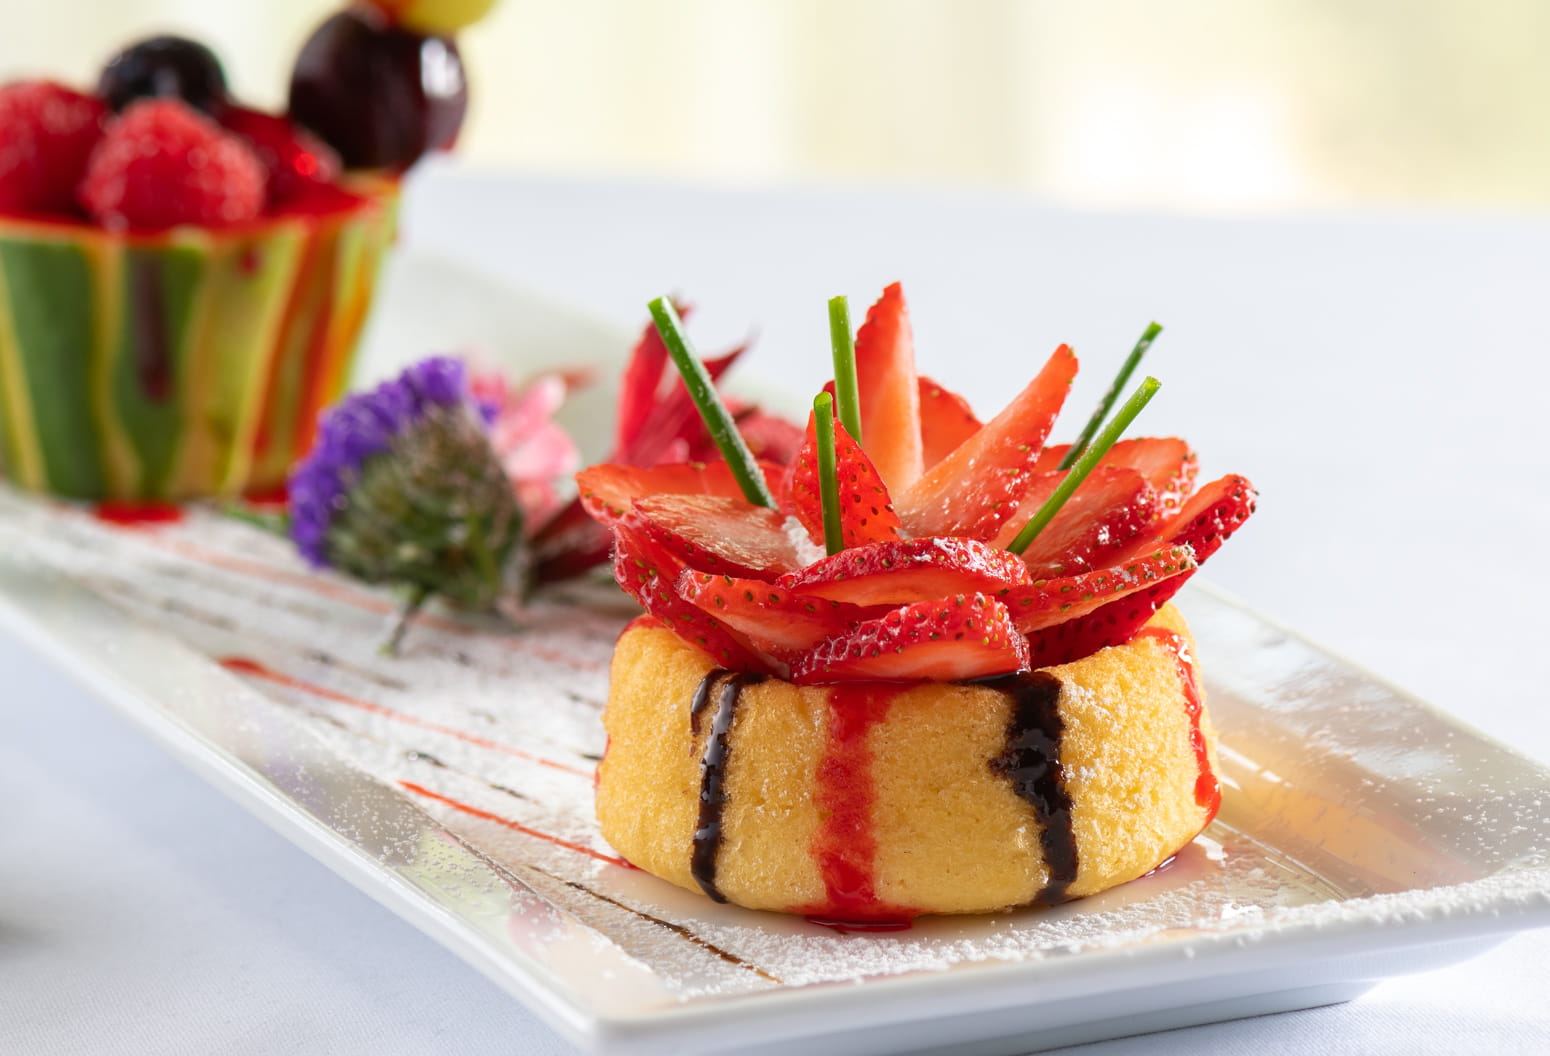 Breakfast pastry with strawberries and fresh fruit